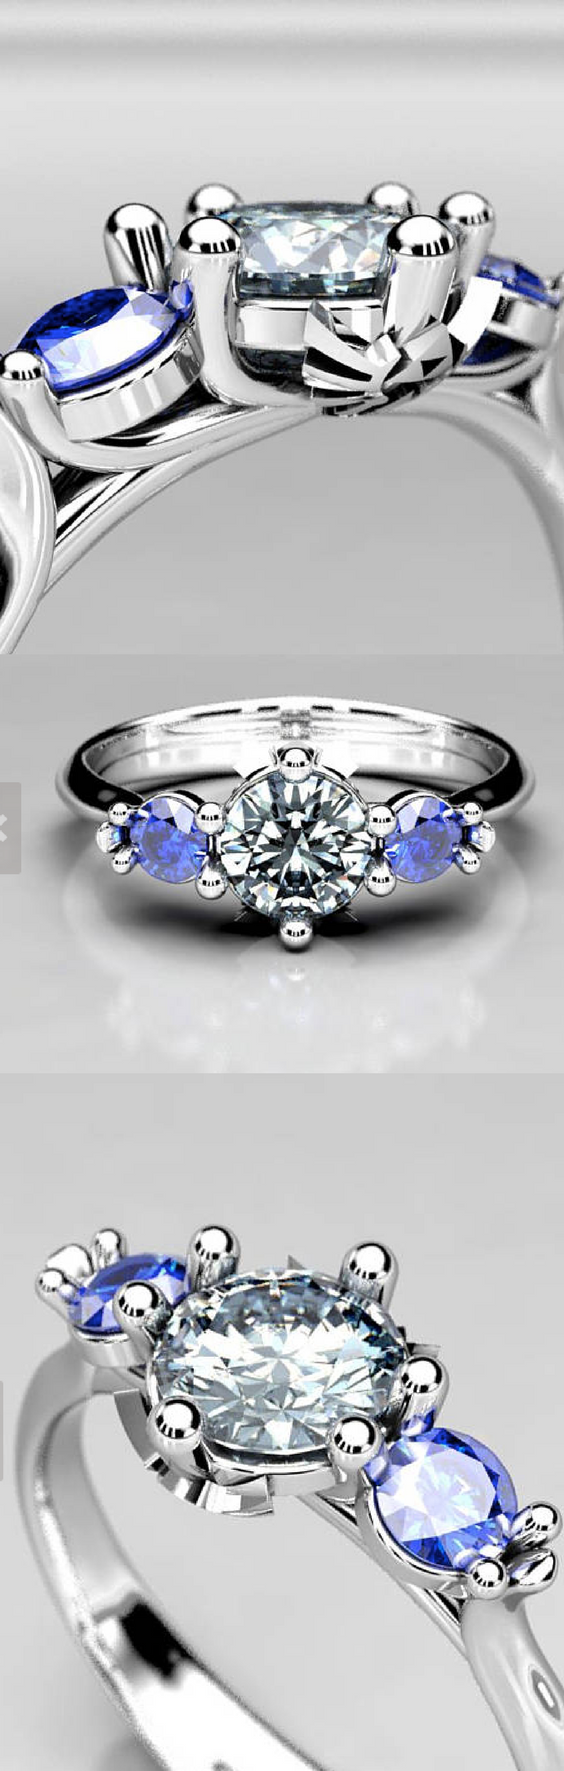 Legend of Zelda Inspired 3 Stone Engagement Ring - Moissanite featured Center Stone and Sapphire Accent Stones.